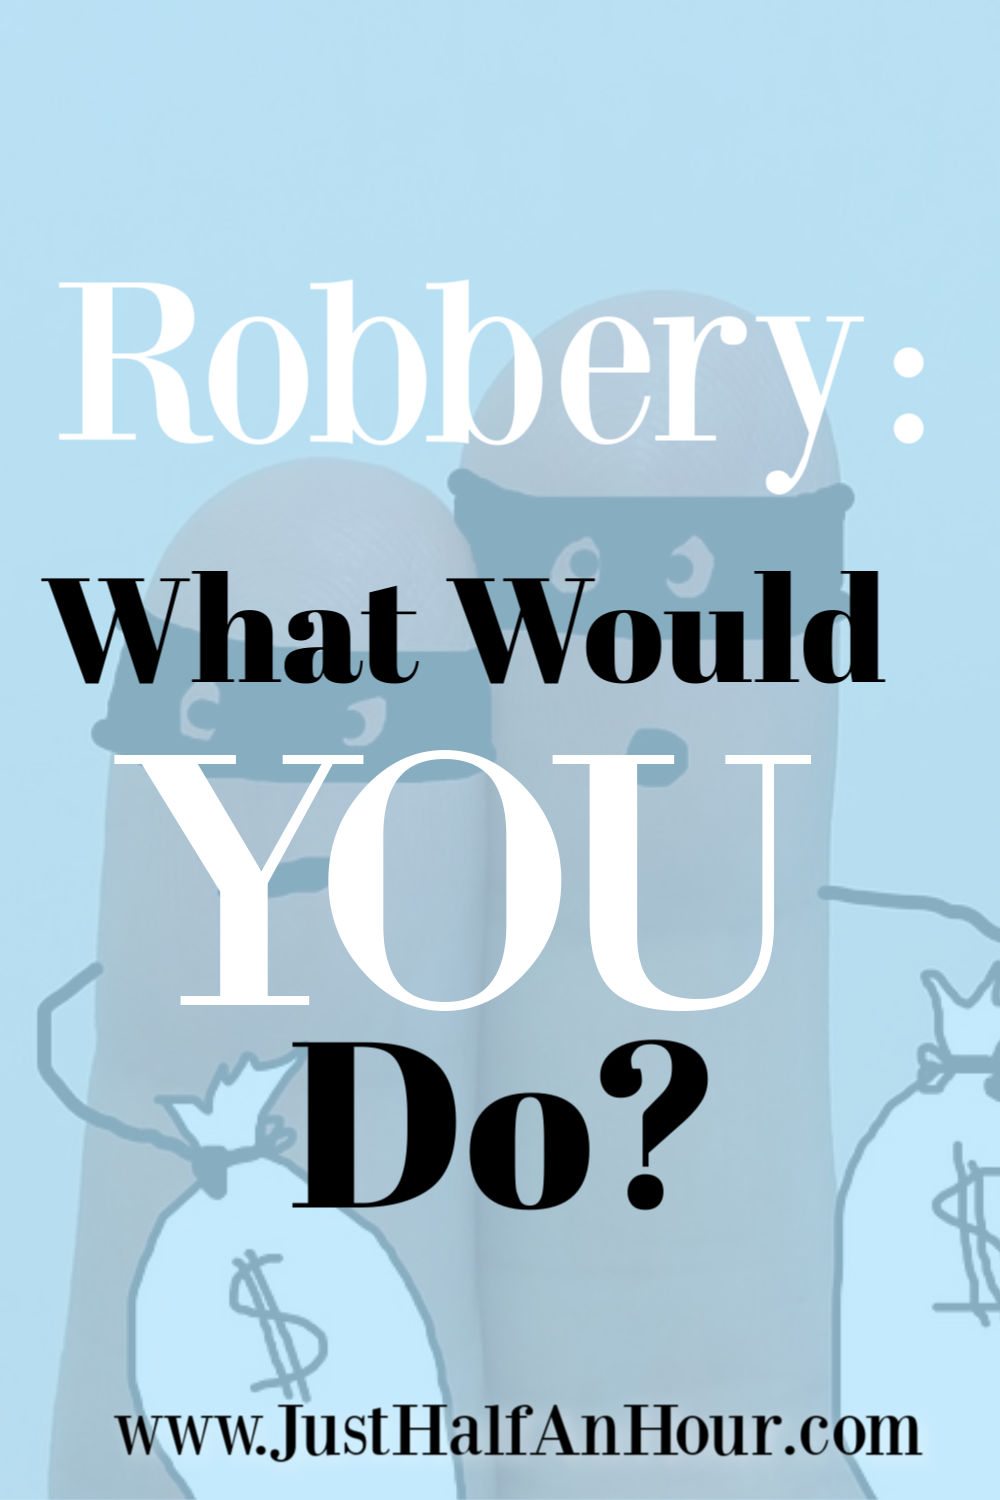 Robbery ~What Would You Do?